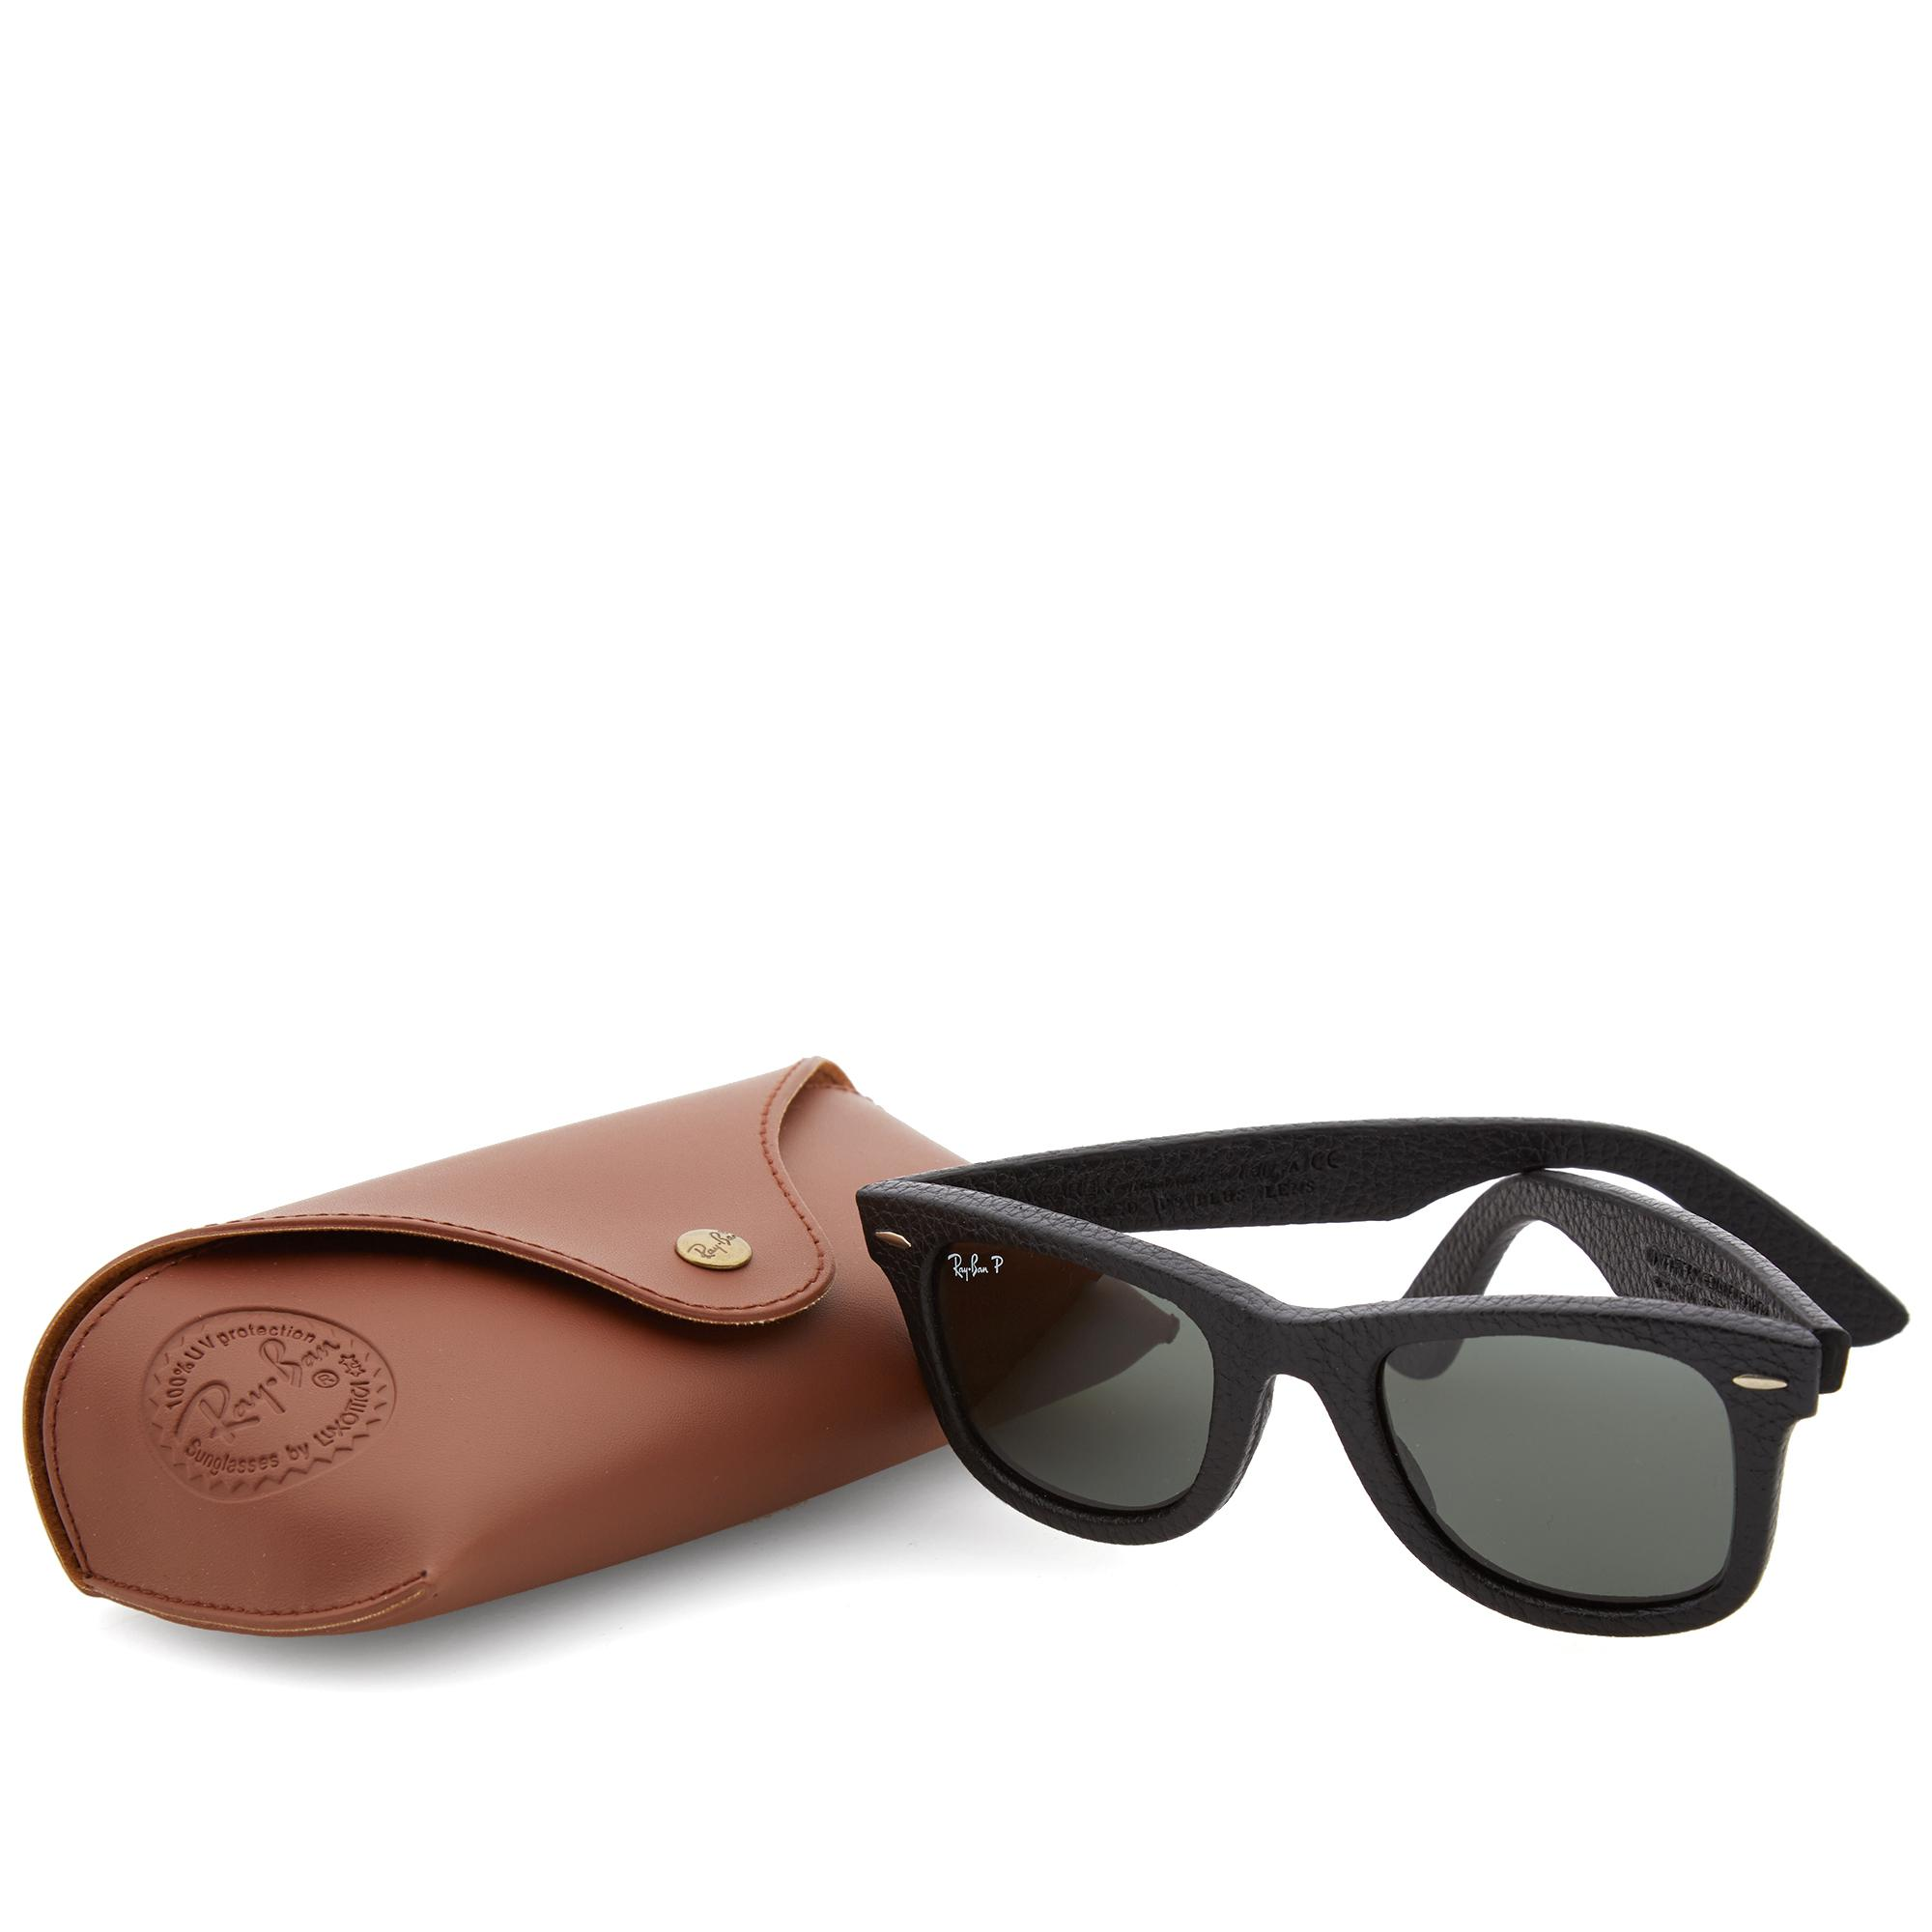 223f04cd8cf Gallery. Previously sold at  END. Men s Wayfarer Sunglasses ...